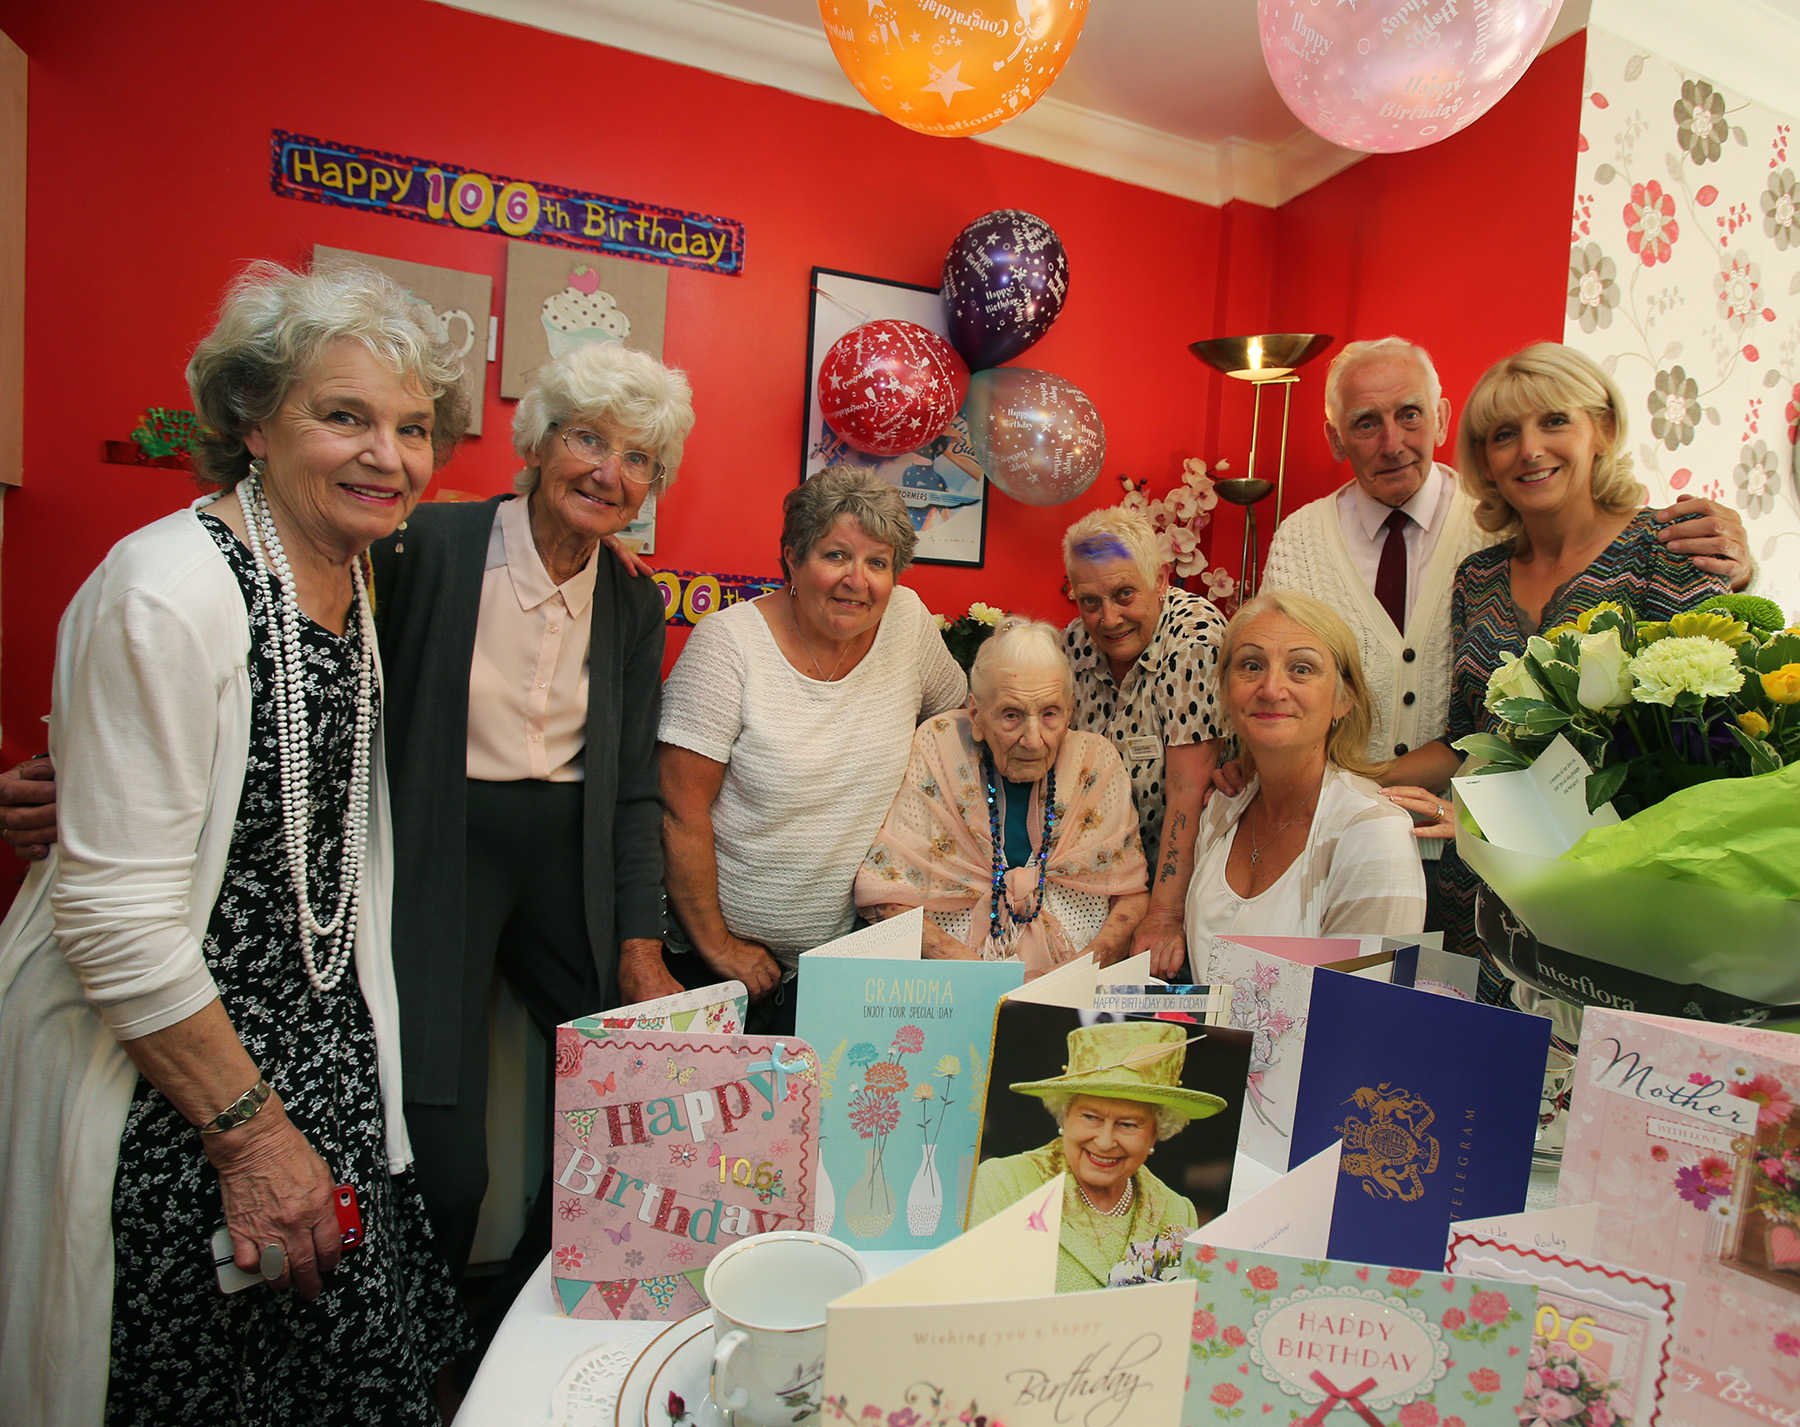 Hilda Davis celebrating her 106th birthday with family , friends and staff